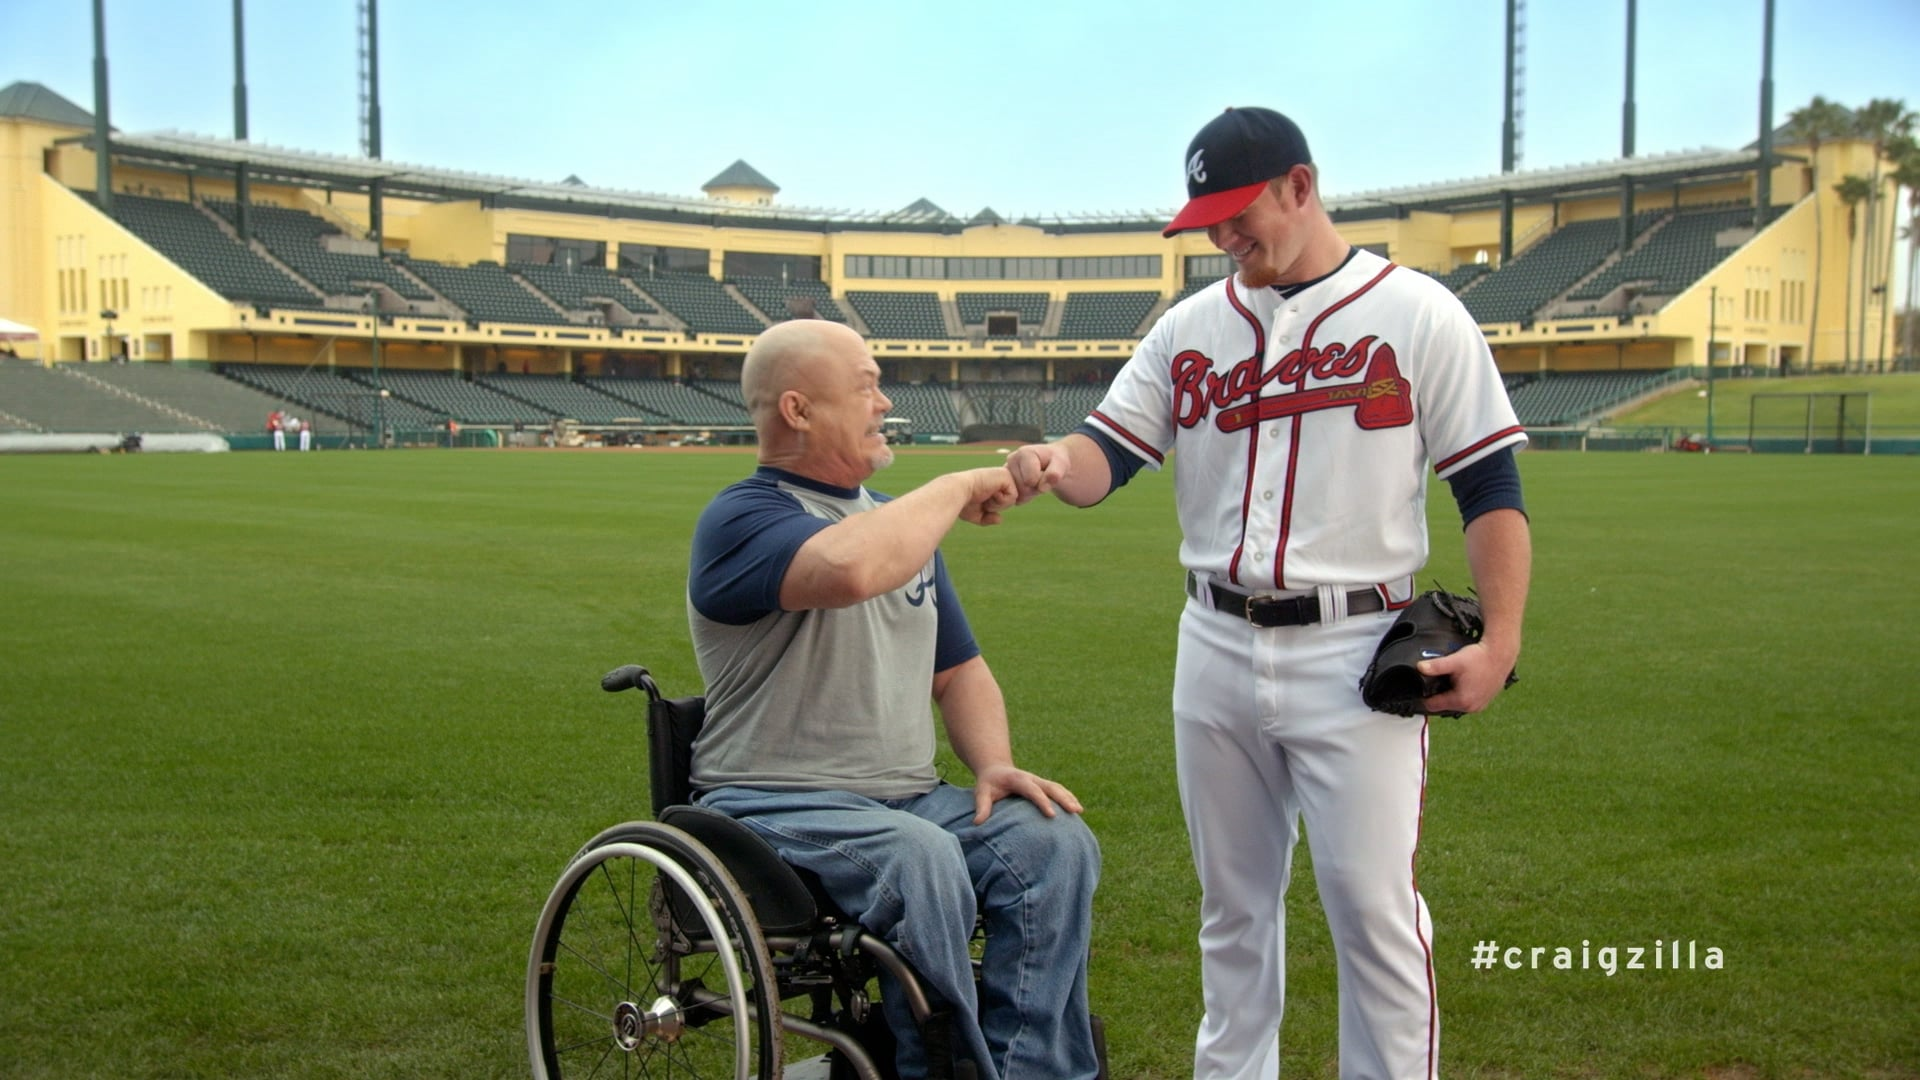 Atlanta Braves 'Tommy Meets Craig Kimbrel' - With over 20 years of experience, John Petersen, our senior colorist, runs a tight ship with his colorists and he himself has colored and supervised the majority of feature films shot in the Atlanta area in the the last 5 years alone.